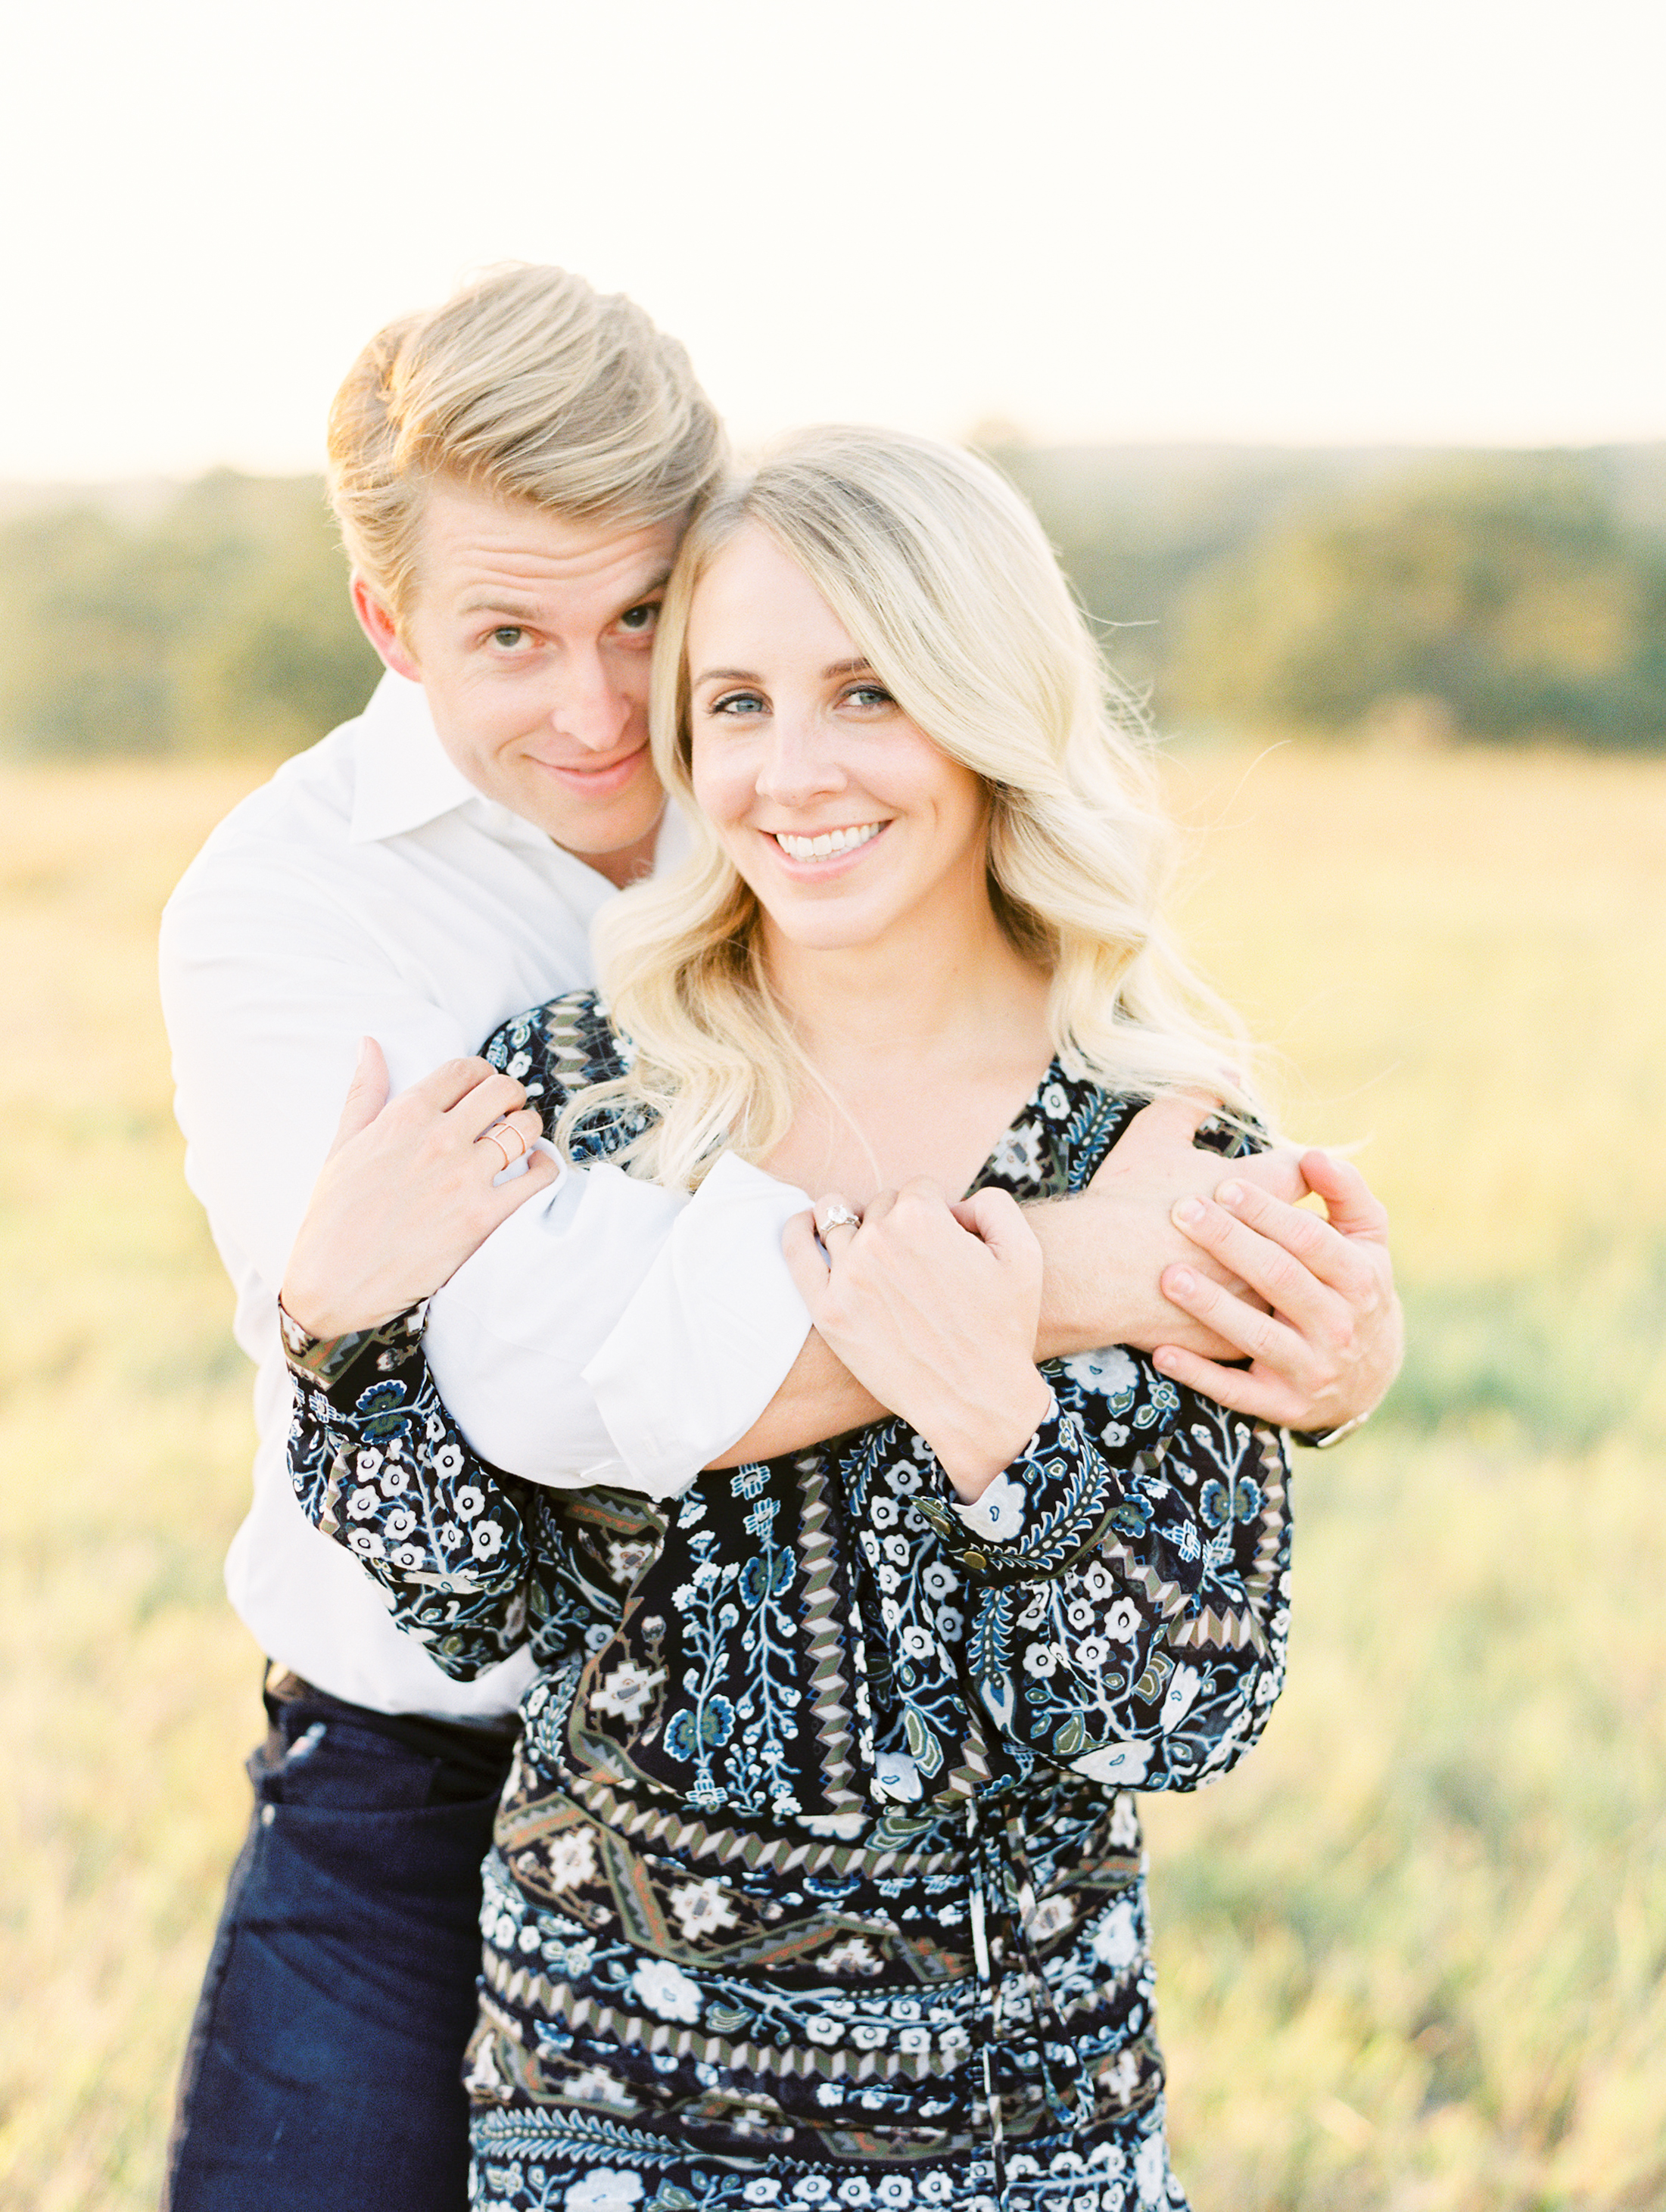 Lauren+John+Engaged+TX-59.jpg